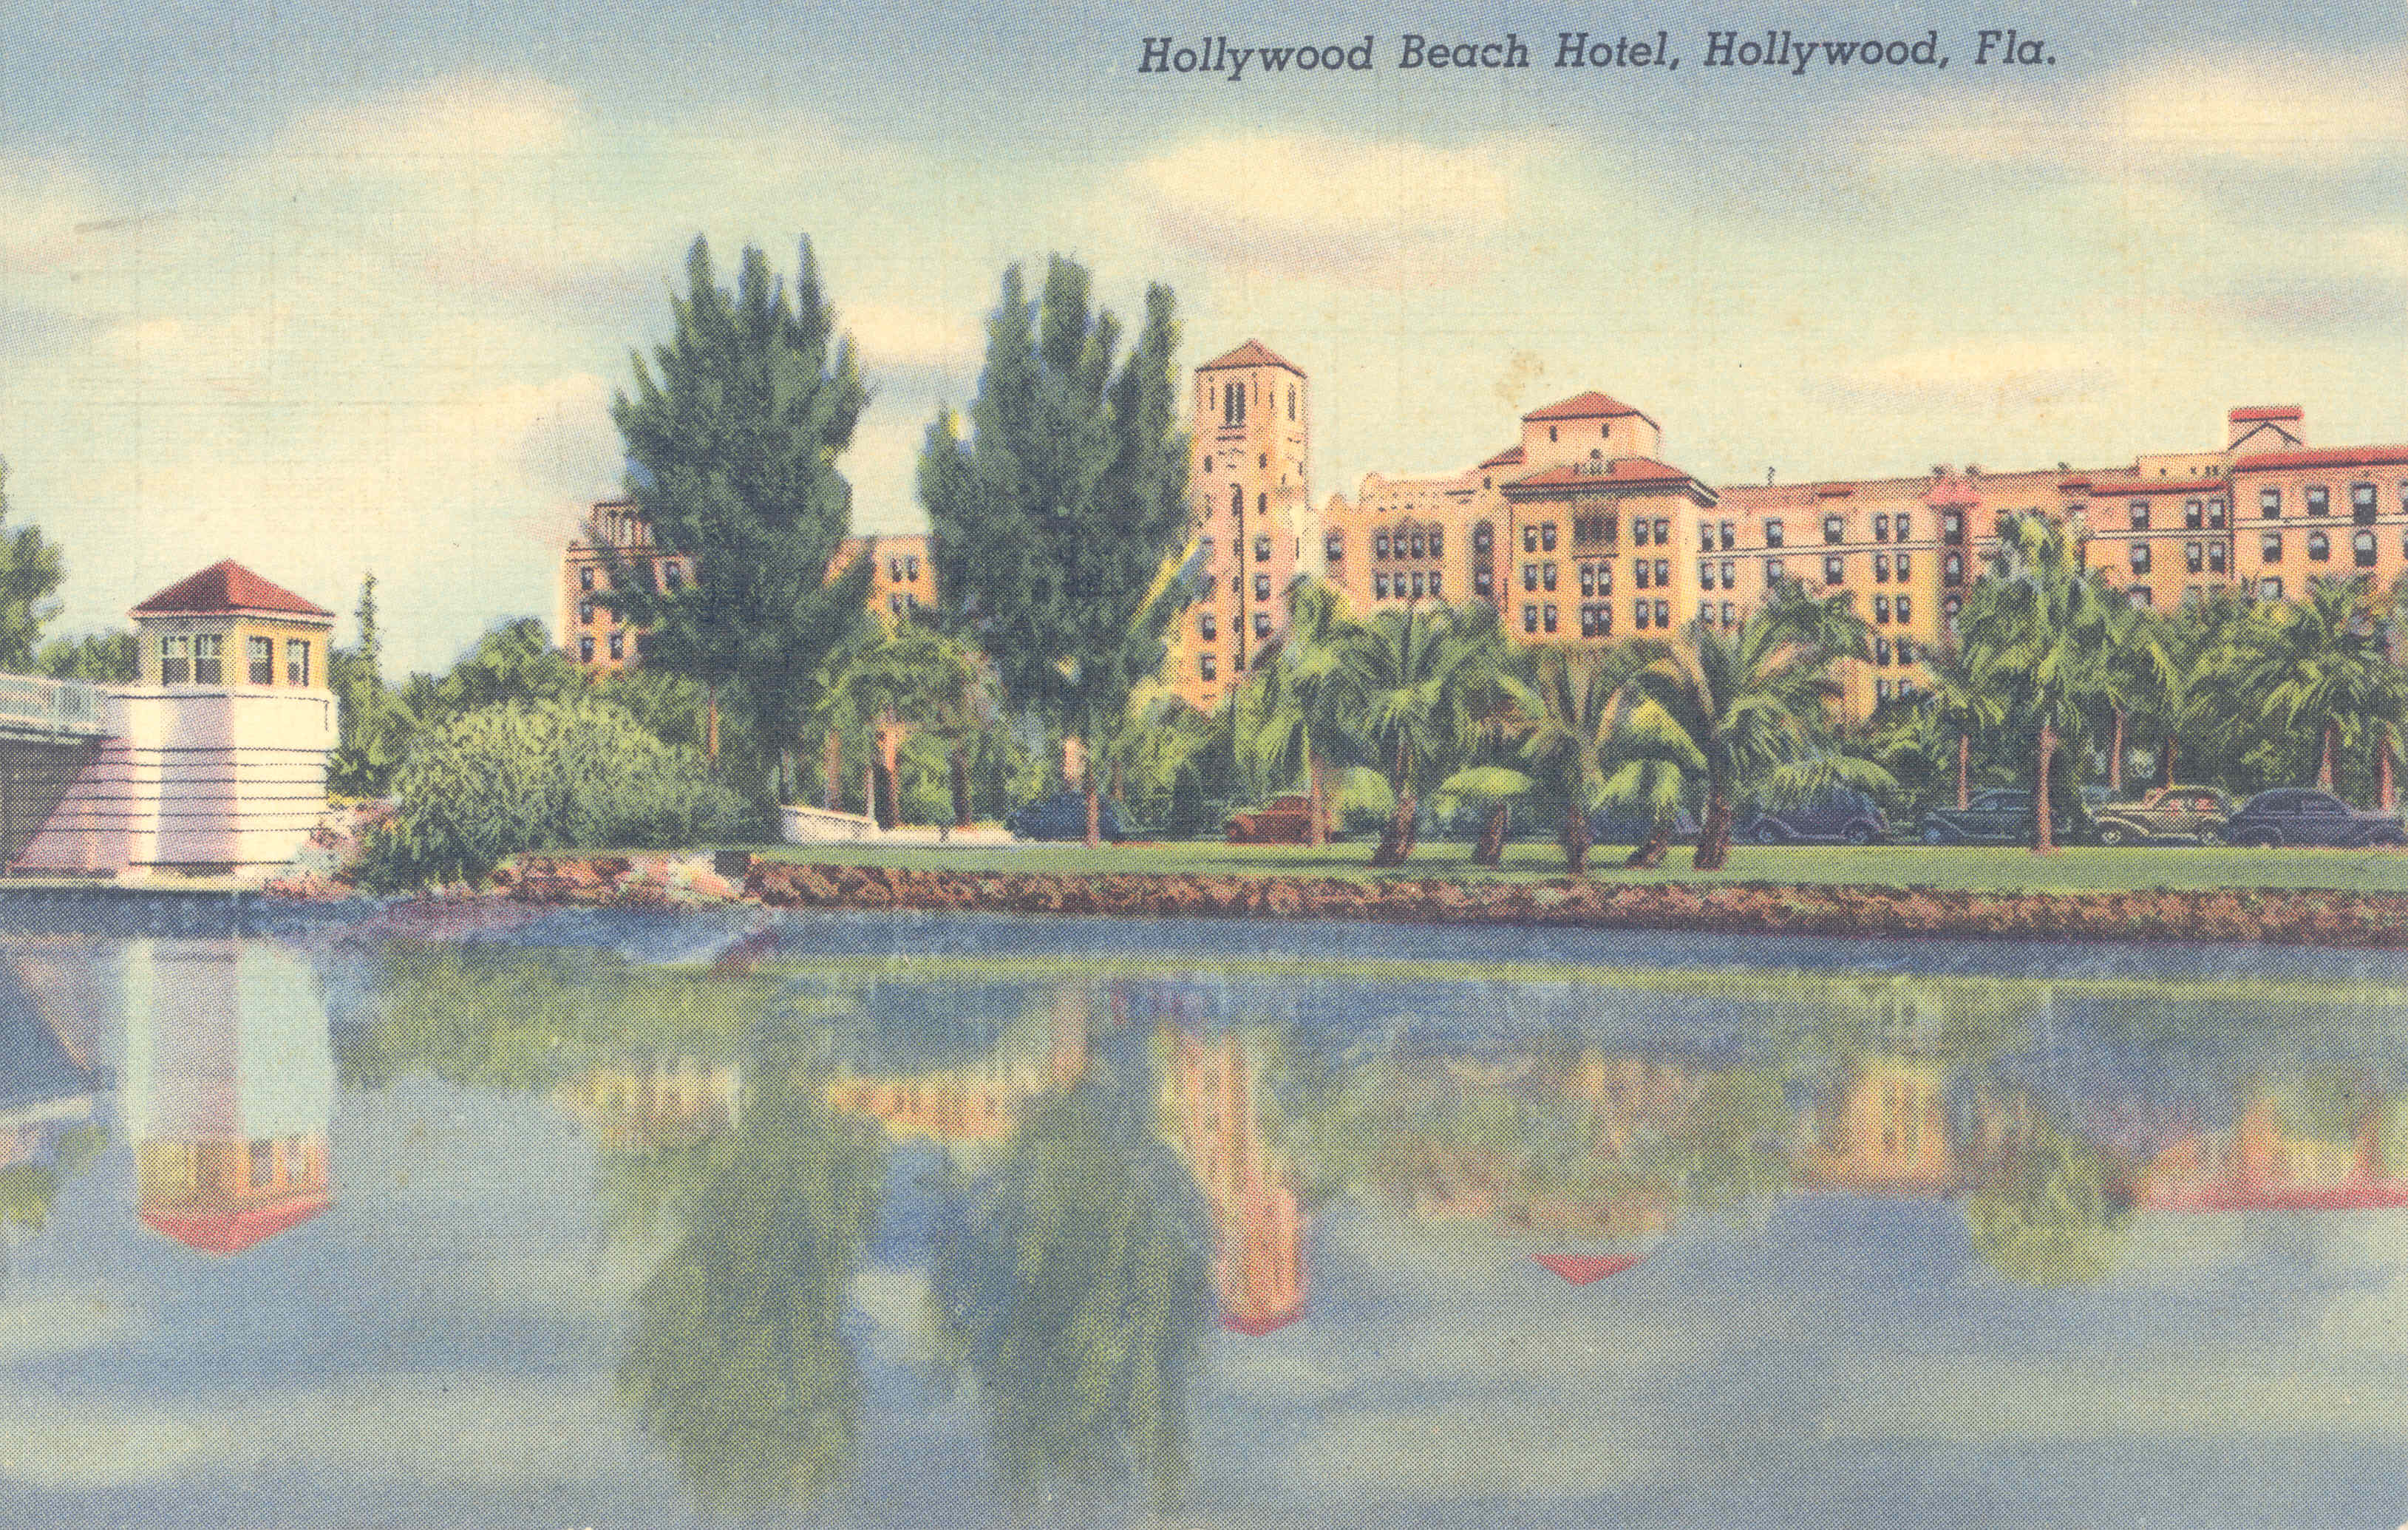 Hollywood Beach Hotel